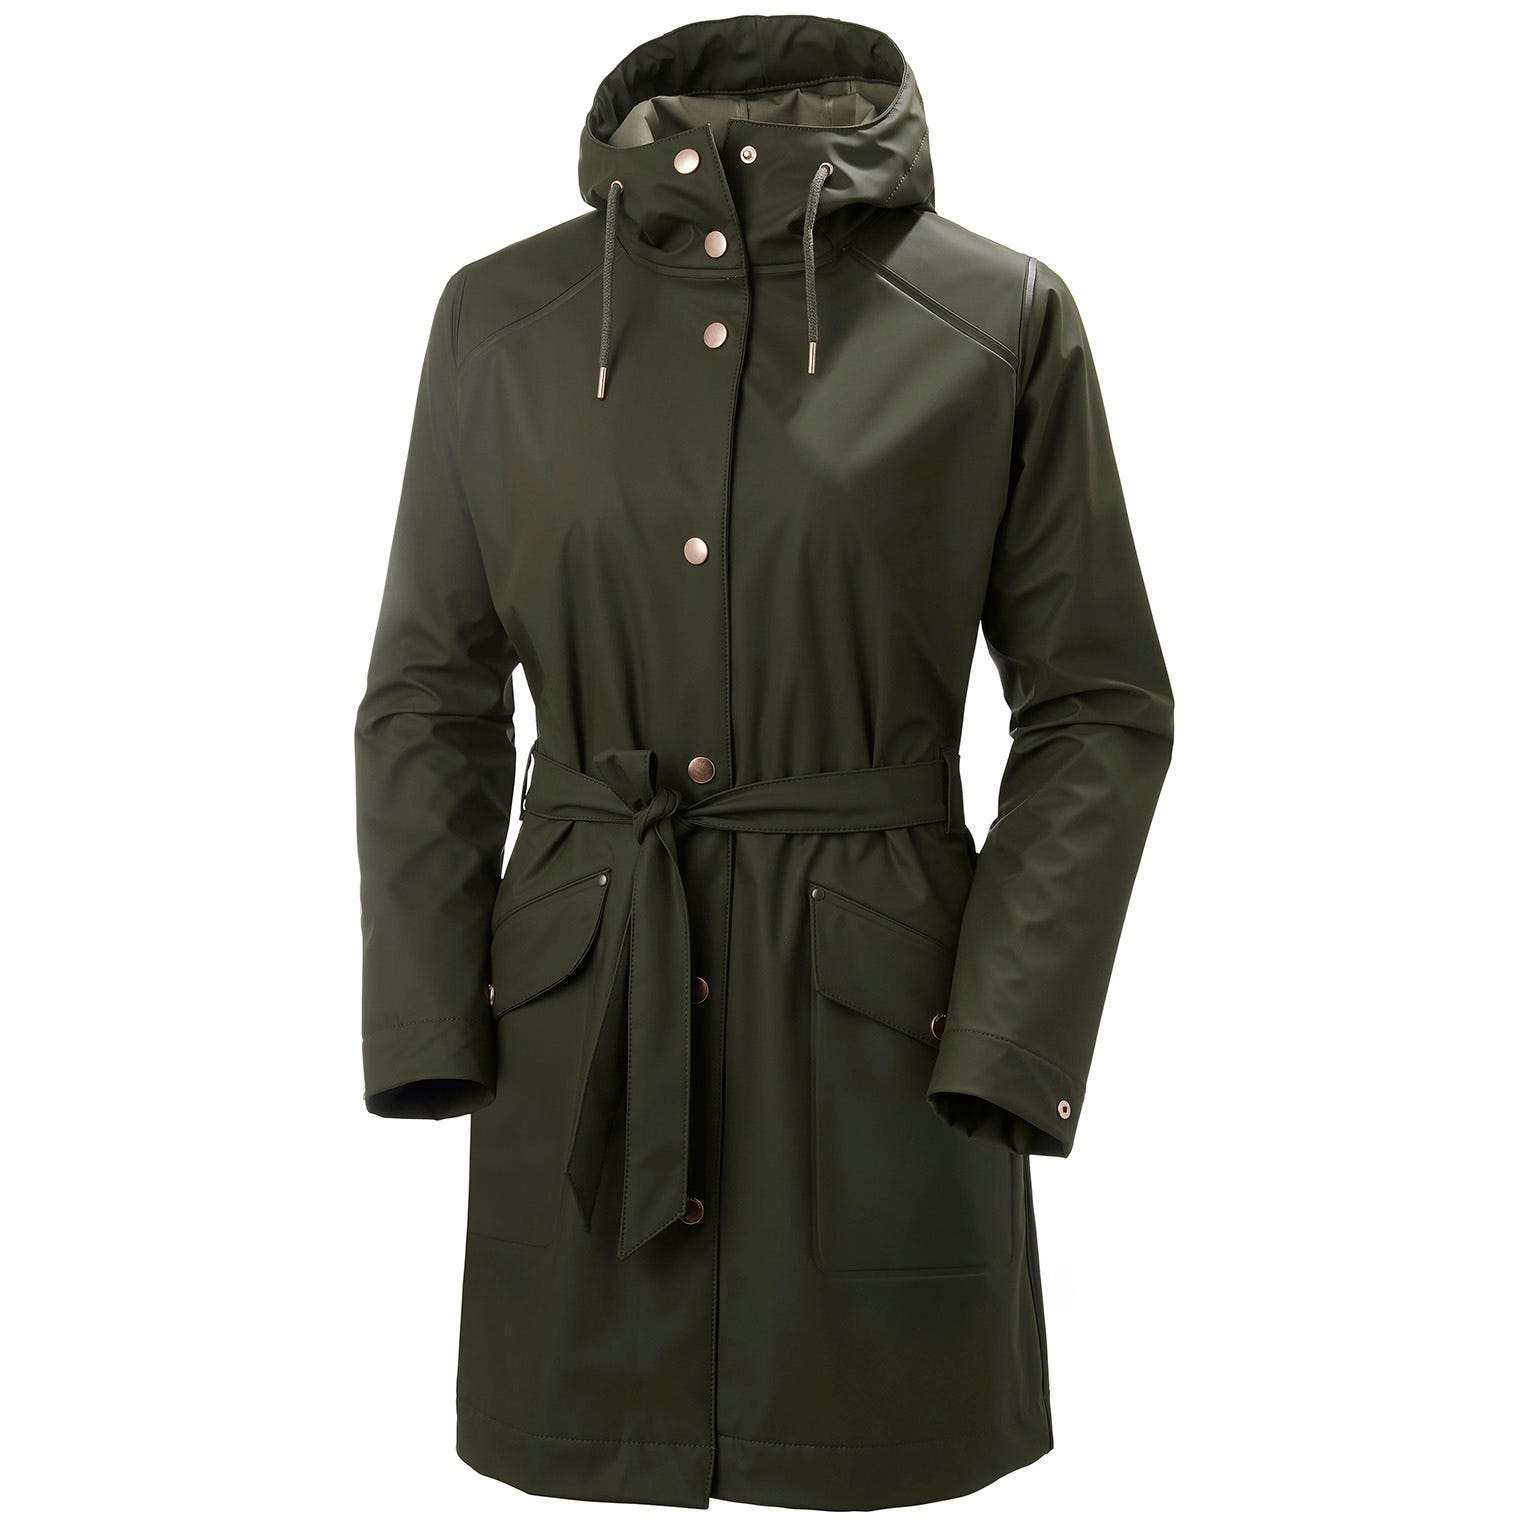 Womens Kirkwall Ii Fully Waterproof Raincoat | Helly Hansen Womens Rain Jacket Green XL